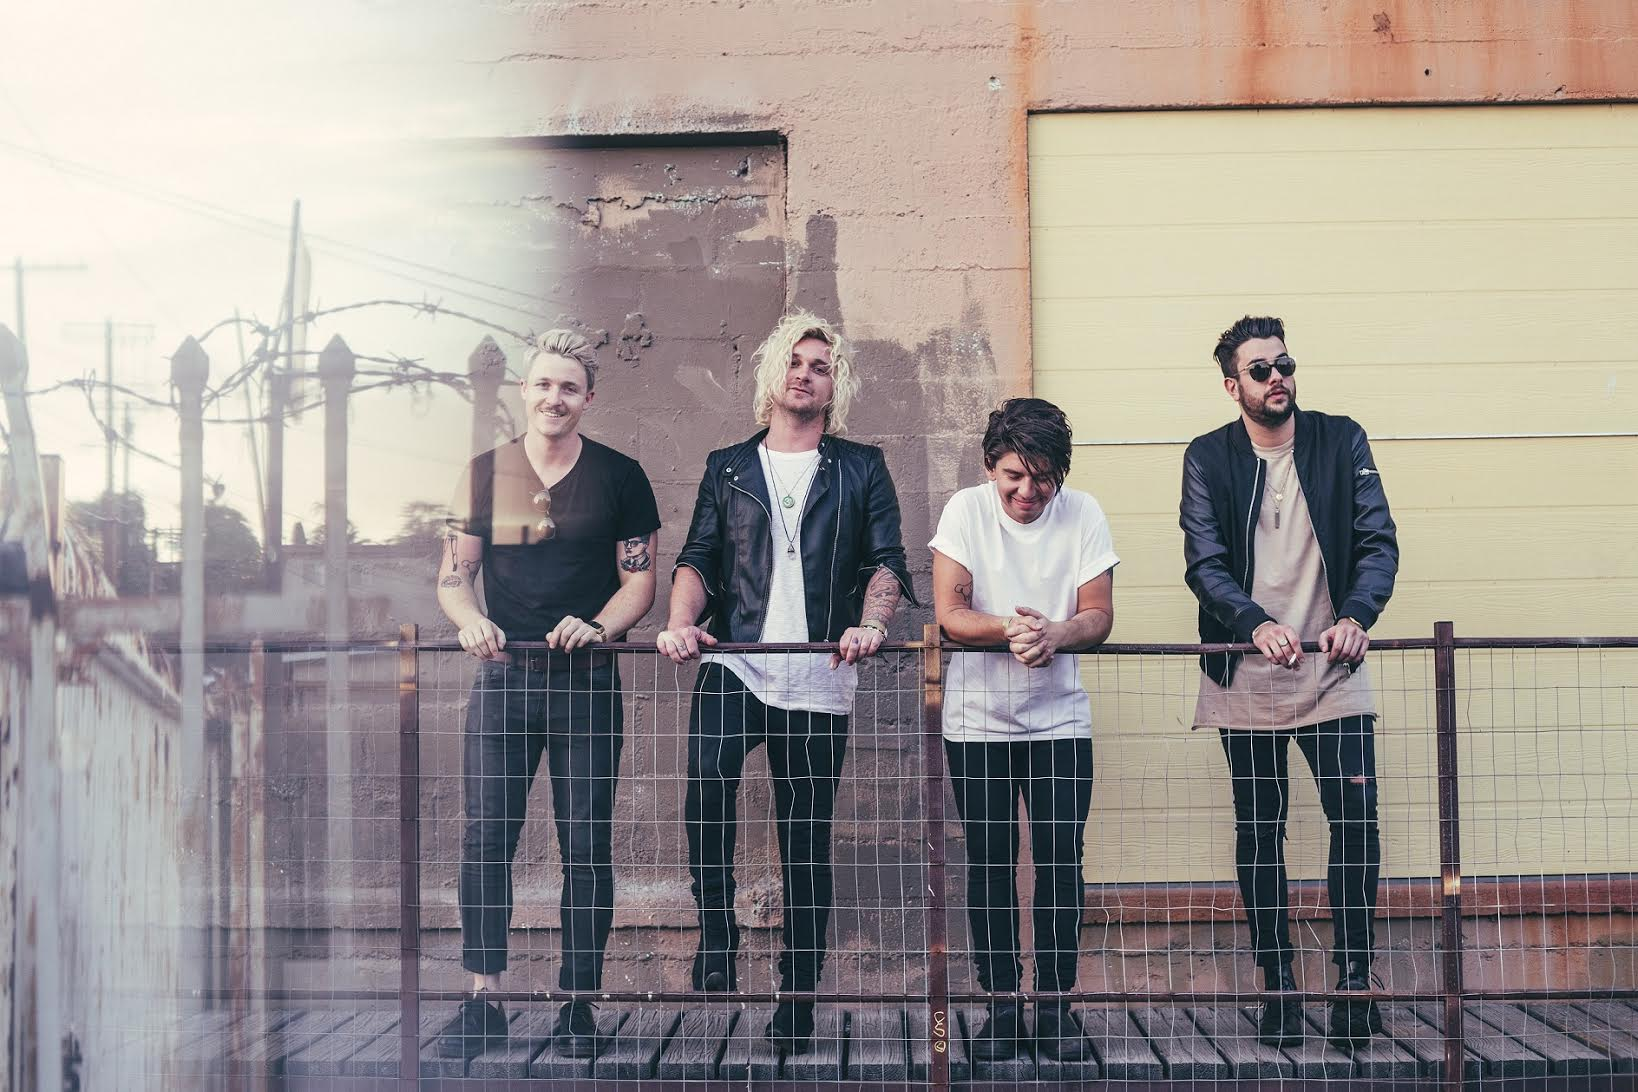 Aussie alt-rock band The Griswolds talk new LP 'High Times for Low Lives'